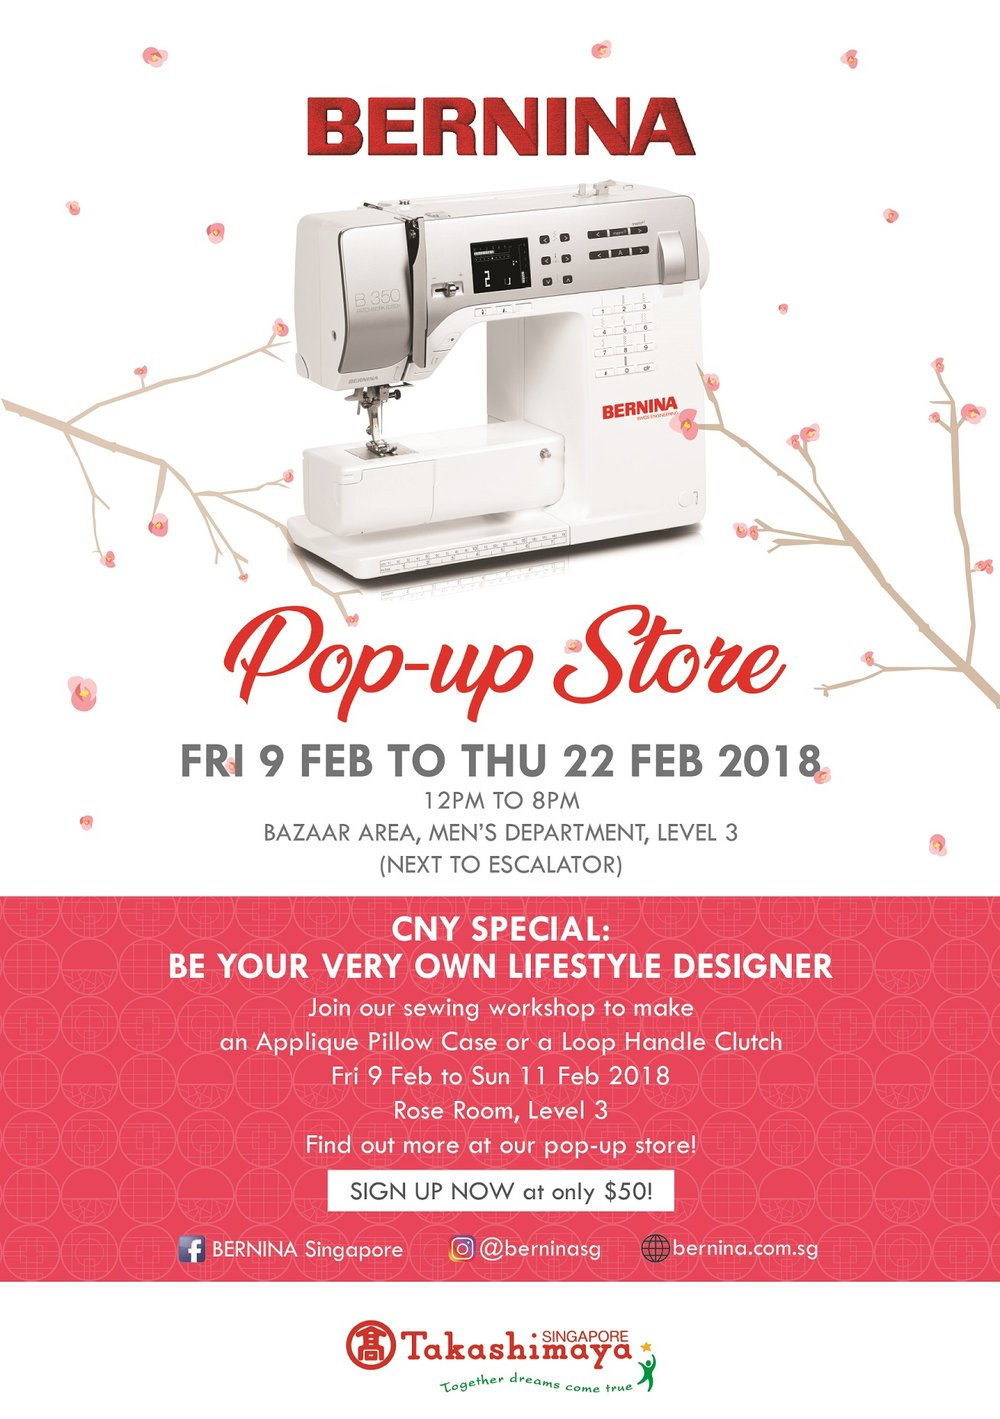 - Register now to join us at our CNY sewing workshops and learn how to sew items such as 春 Applique pillow case or a loop handle clutch. Perfect activities for getting into the CNY mood! The 90 mins workshop is organised by BERNINA in conjunction with Takashimaya Dept Store and is held at the Rose Room (Level 3) from 9 - 11 Feb (Friday to Sunday).Timeslots: 1pm - 2.30pm or 3.30pm - 5pmThe workshop is chargeable at a nominal fee of only $50.To sign up, simply click on the heading